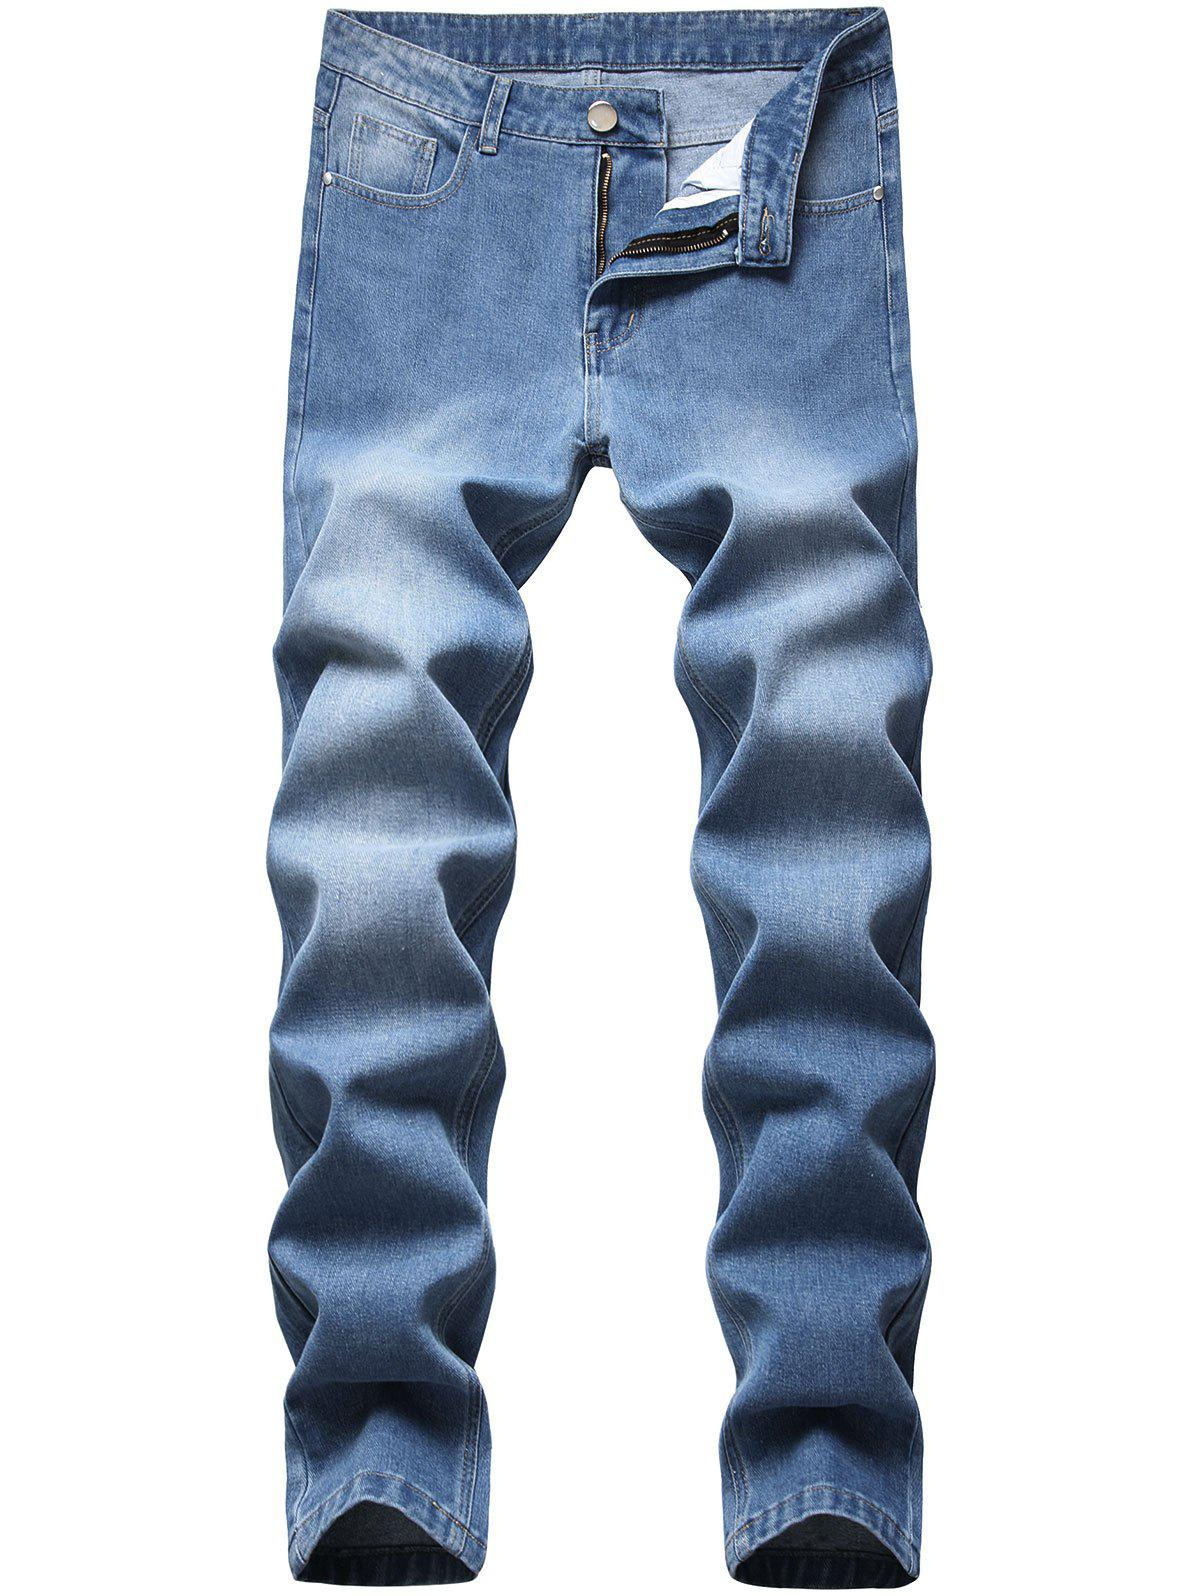 Medium Wash Zipper Fly Tapered Jeans - LIGHT BLUE 38